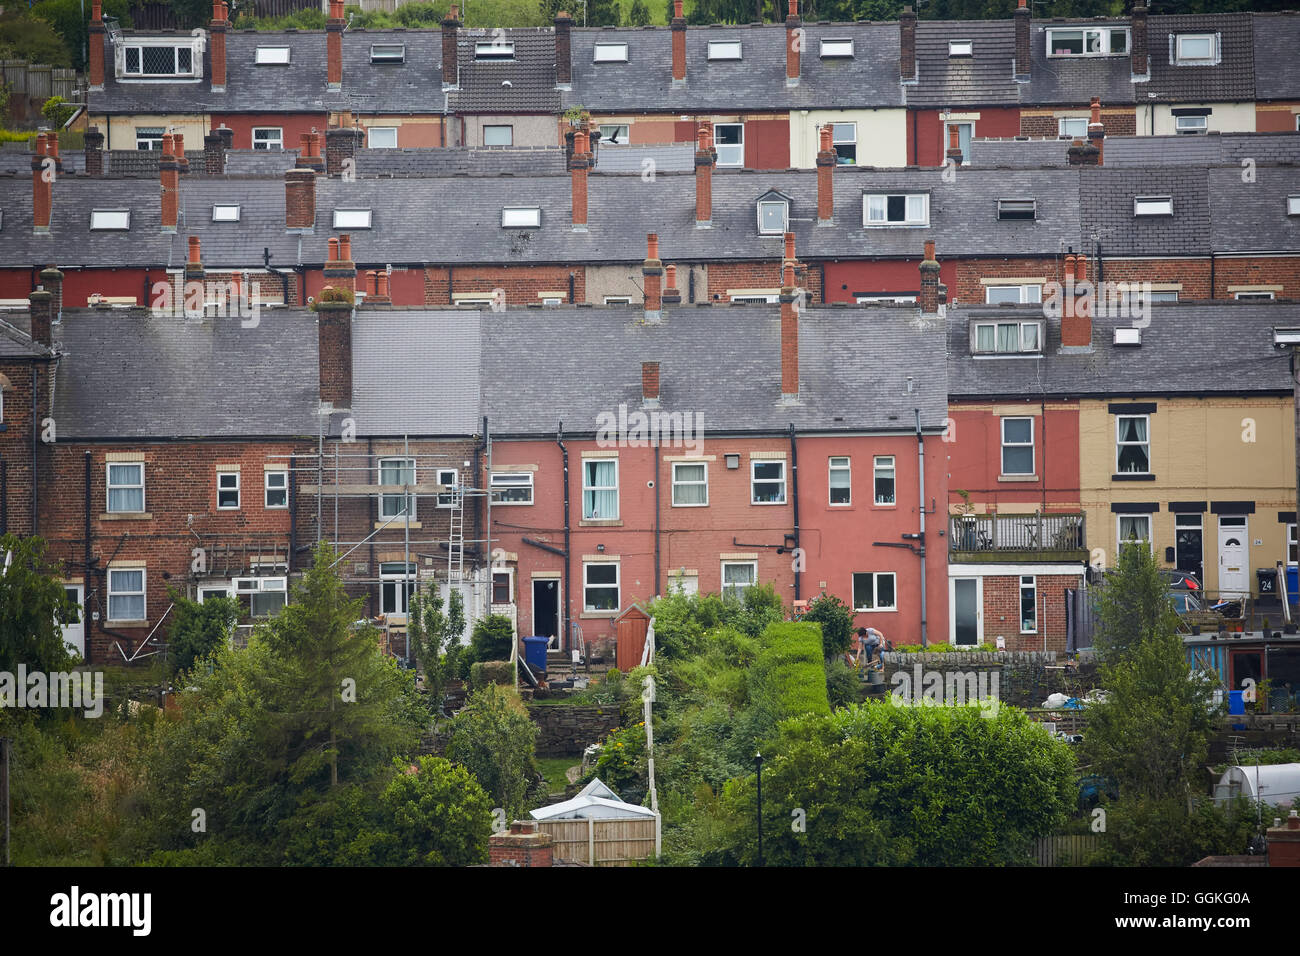 STOCKSBRIDGE Sheffield Wohnungsbestand typische STOCKSBRIDGE Sheffield Yorkshire Reihenhaus Häuser Häuser Stockbild